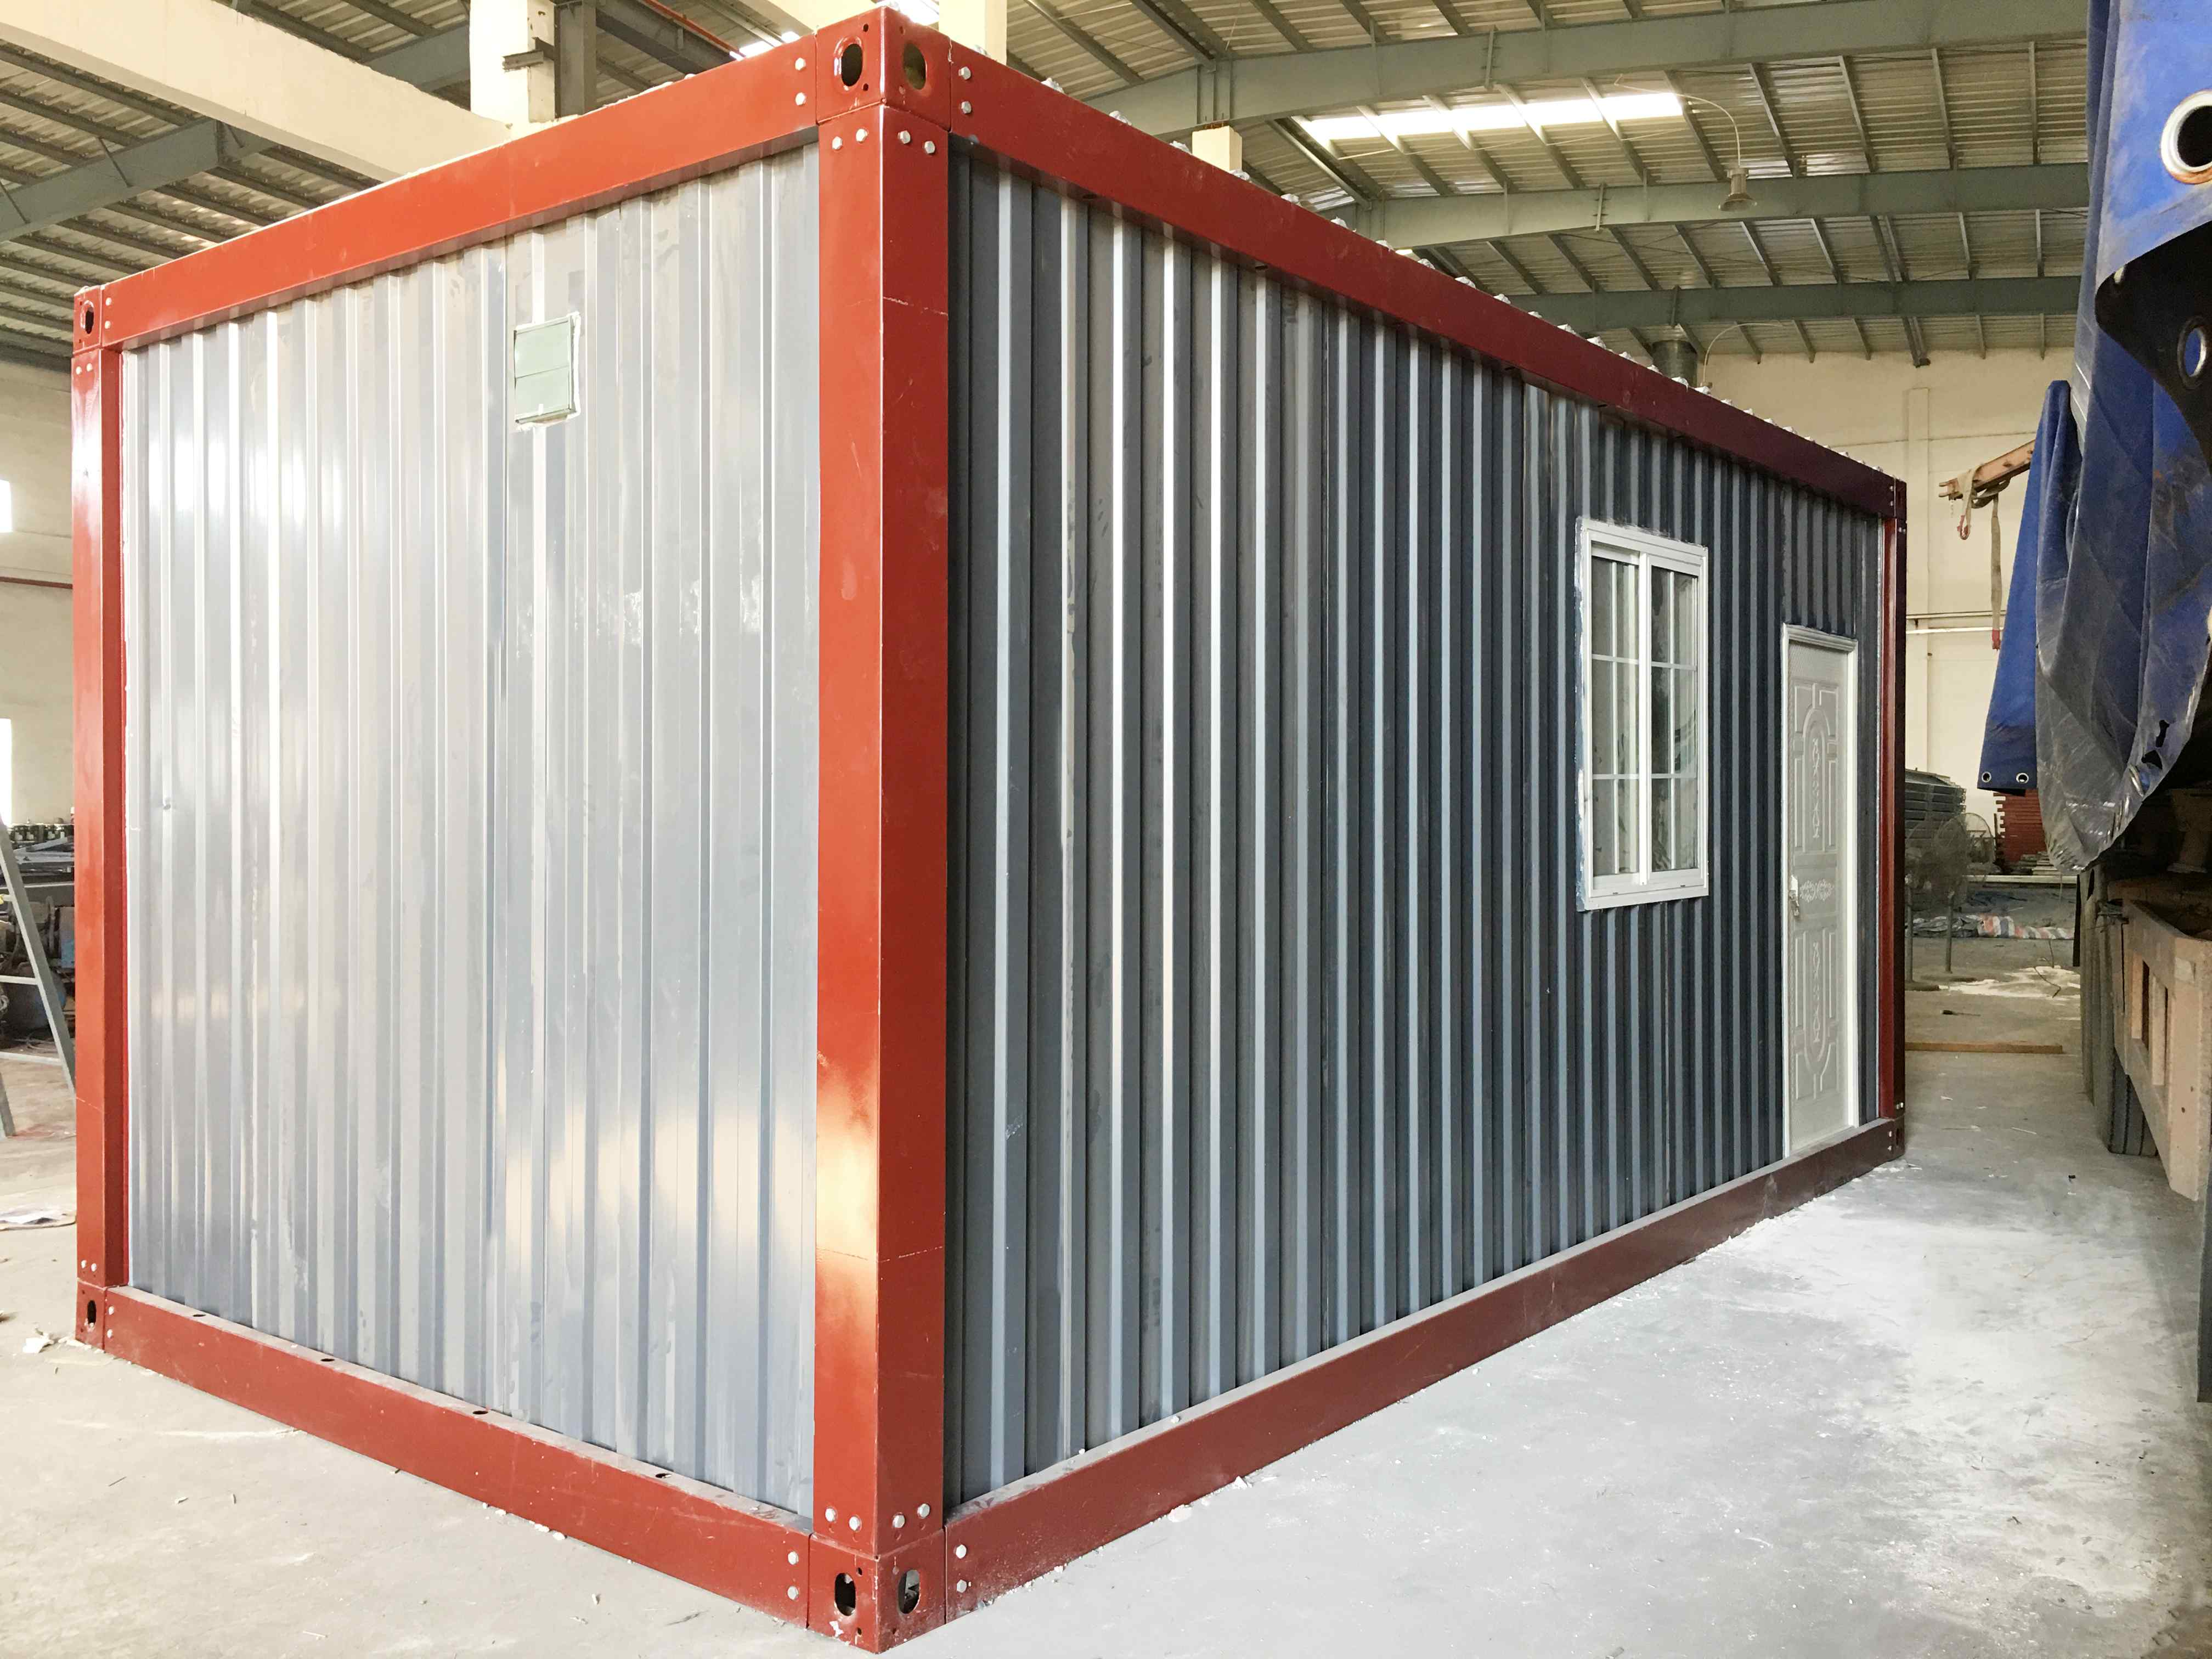 WELLCAMP Prefabricated Detachable Container House with Bathroom & Toilet -D32 Detachable Container House image7